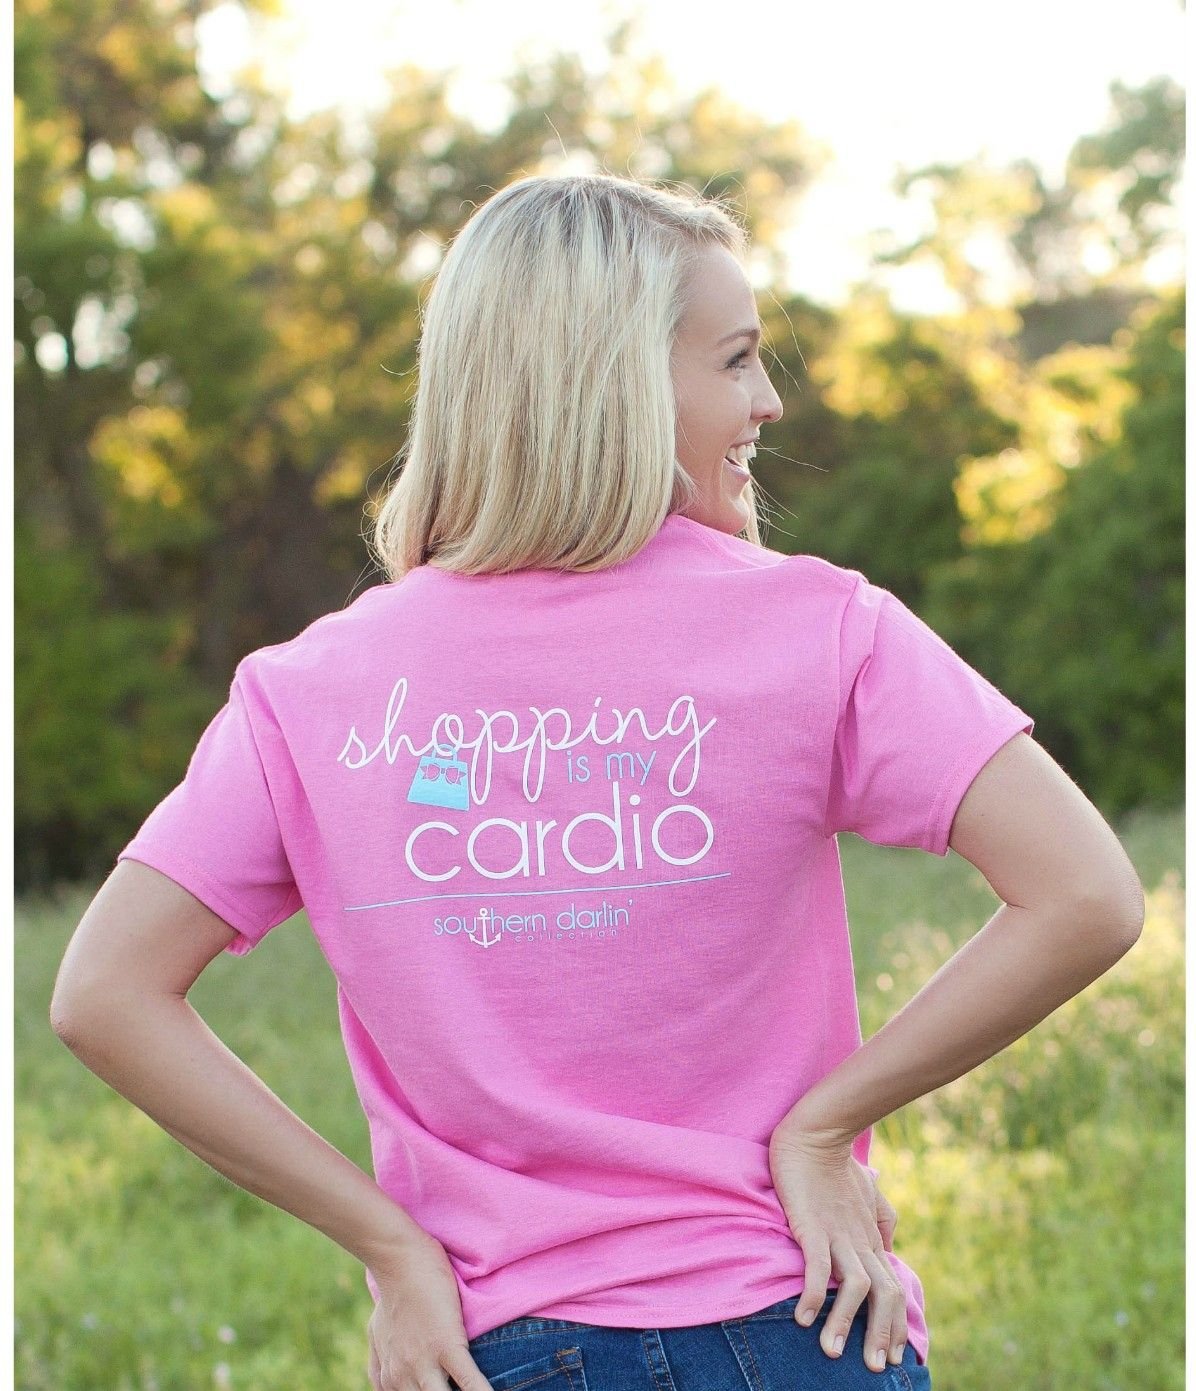 Southern darlin' – Shopping Is My Cardio